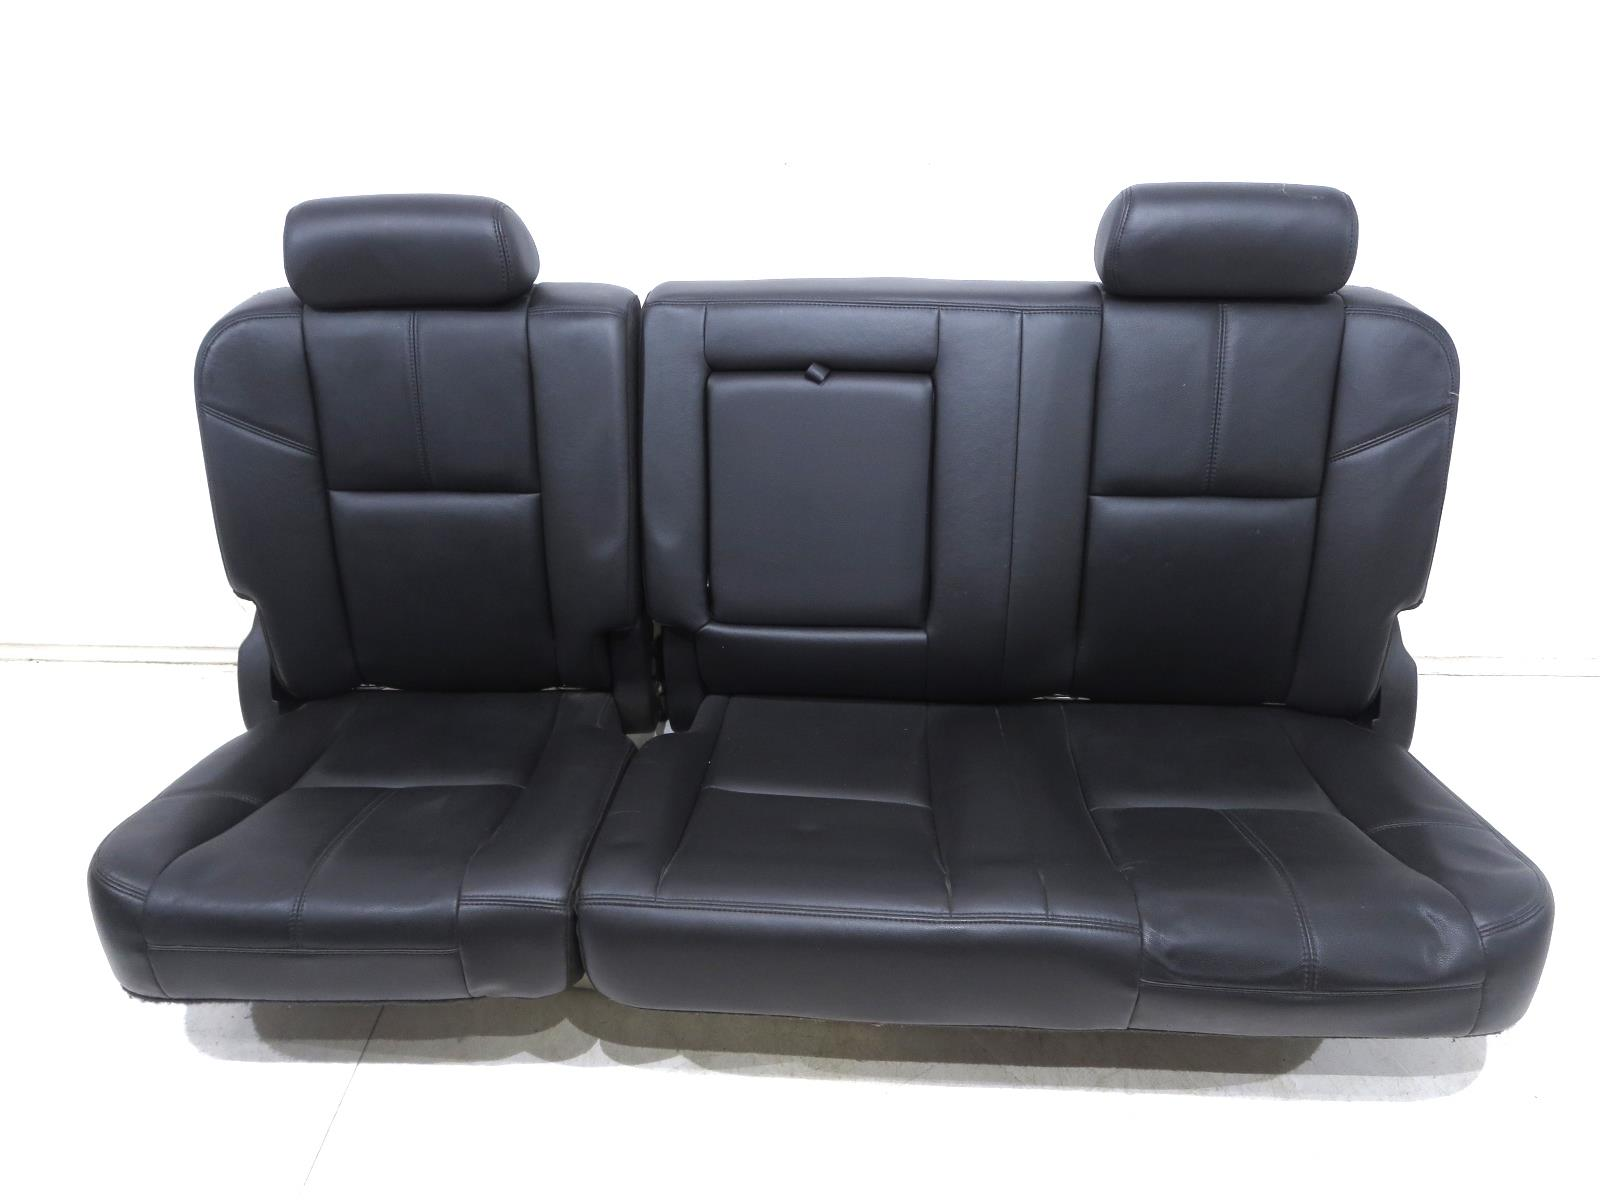 Chevy Silverado Replacement Seats >> Replacement Chevy Silverado Gmc Sierra Used Oem Rear Seat 4